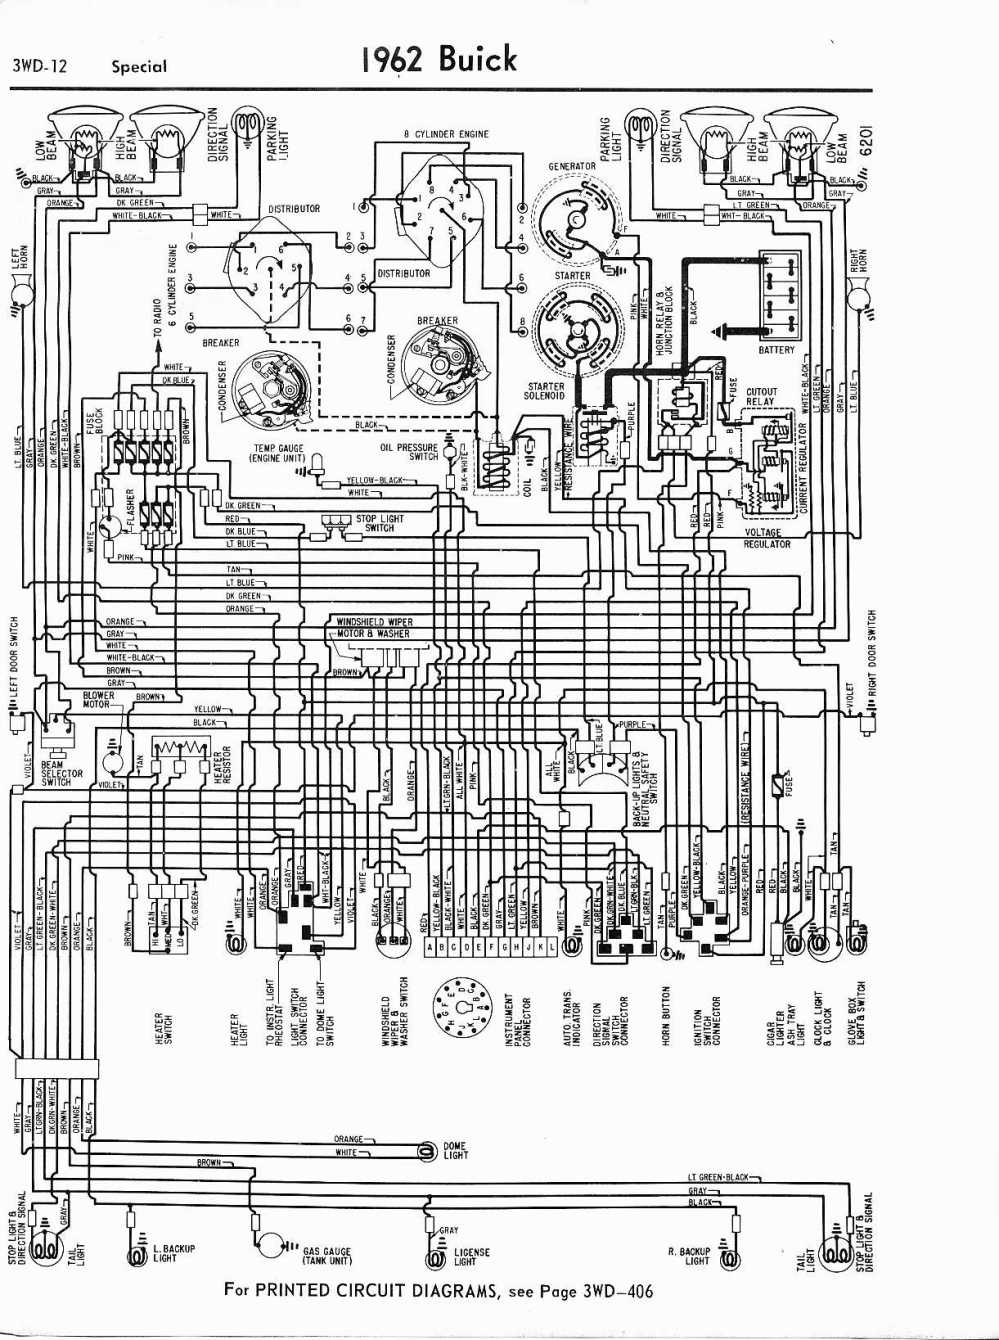 medium resolution of buick wiring diagrams 1957 1965 arctic cat wildcat wiring diagram 1962 lesabre wildcat